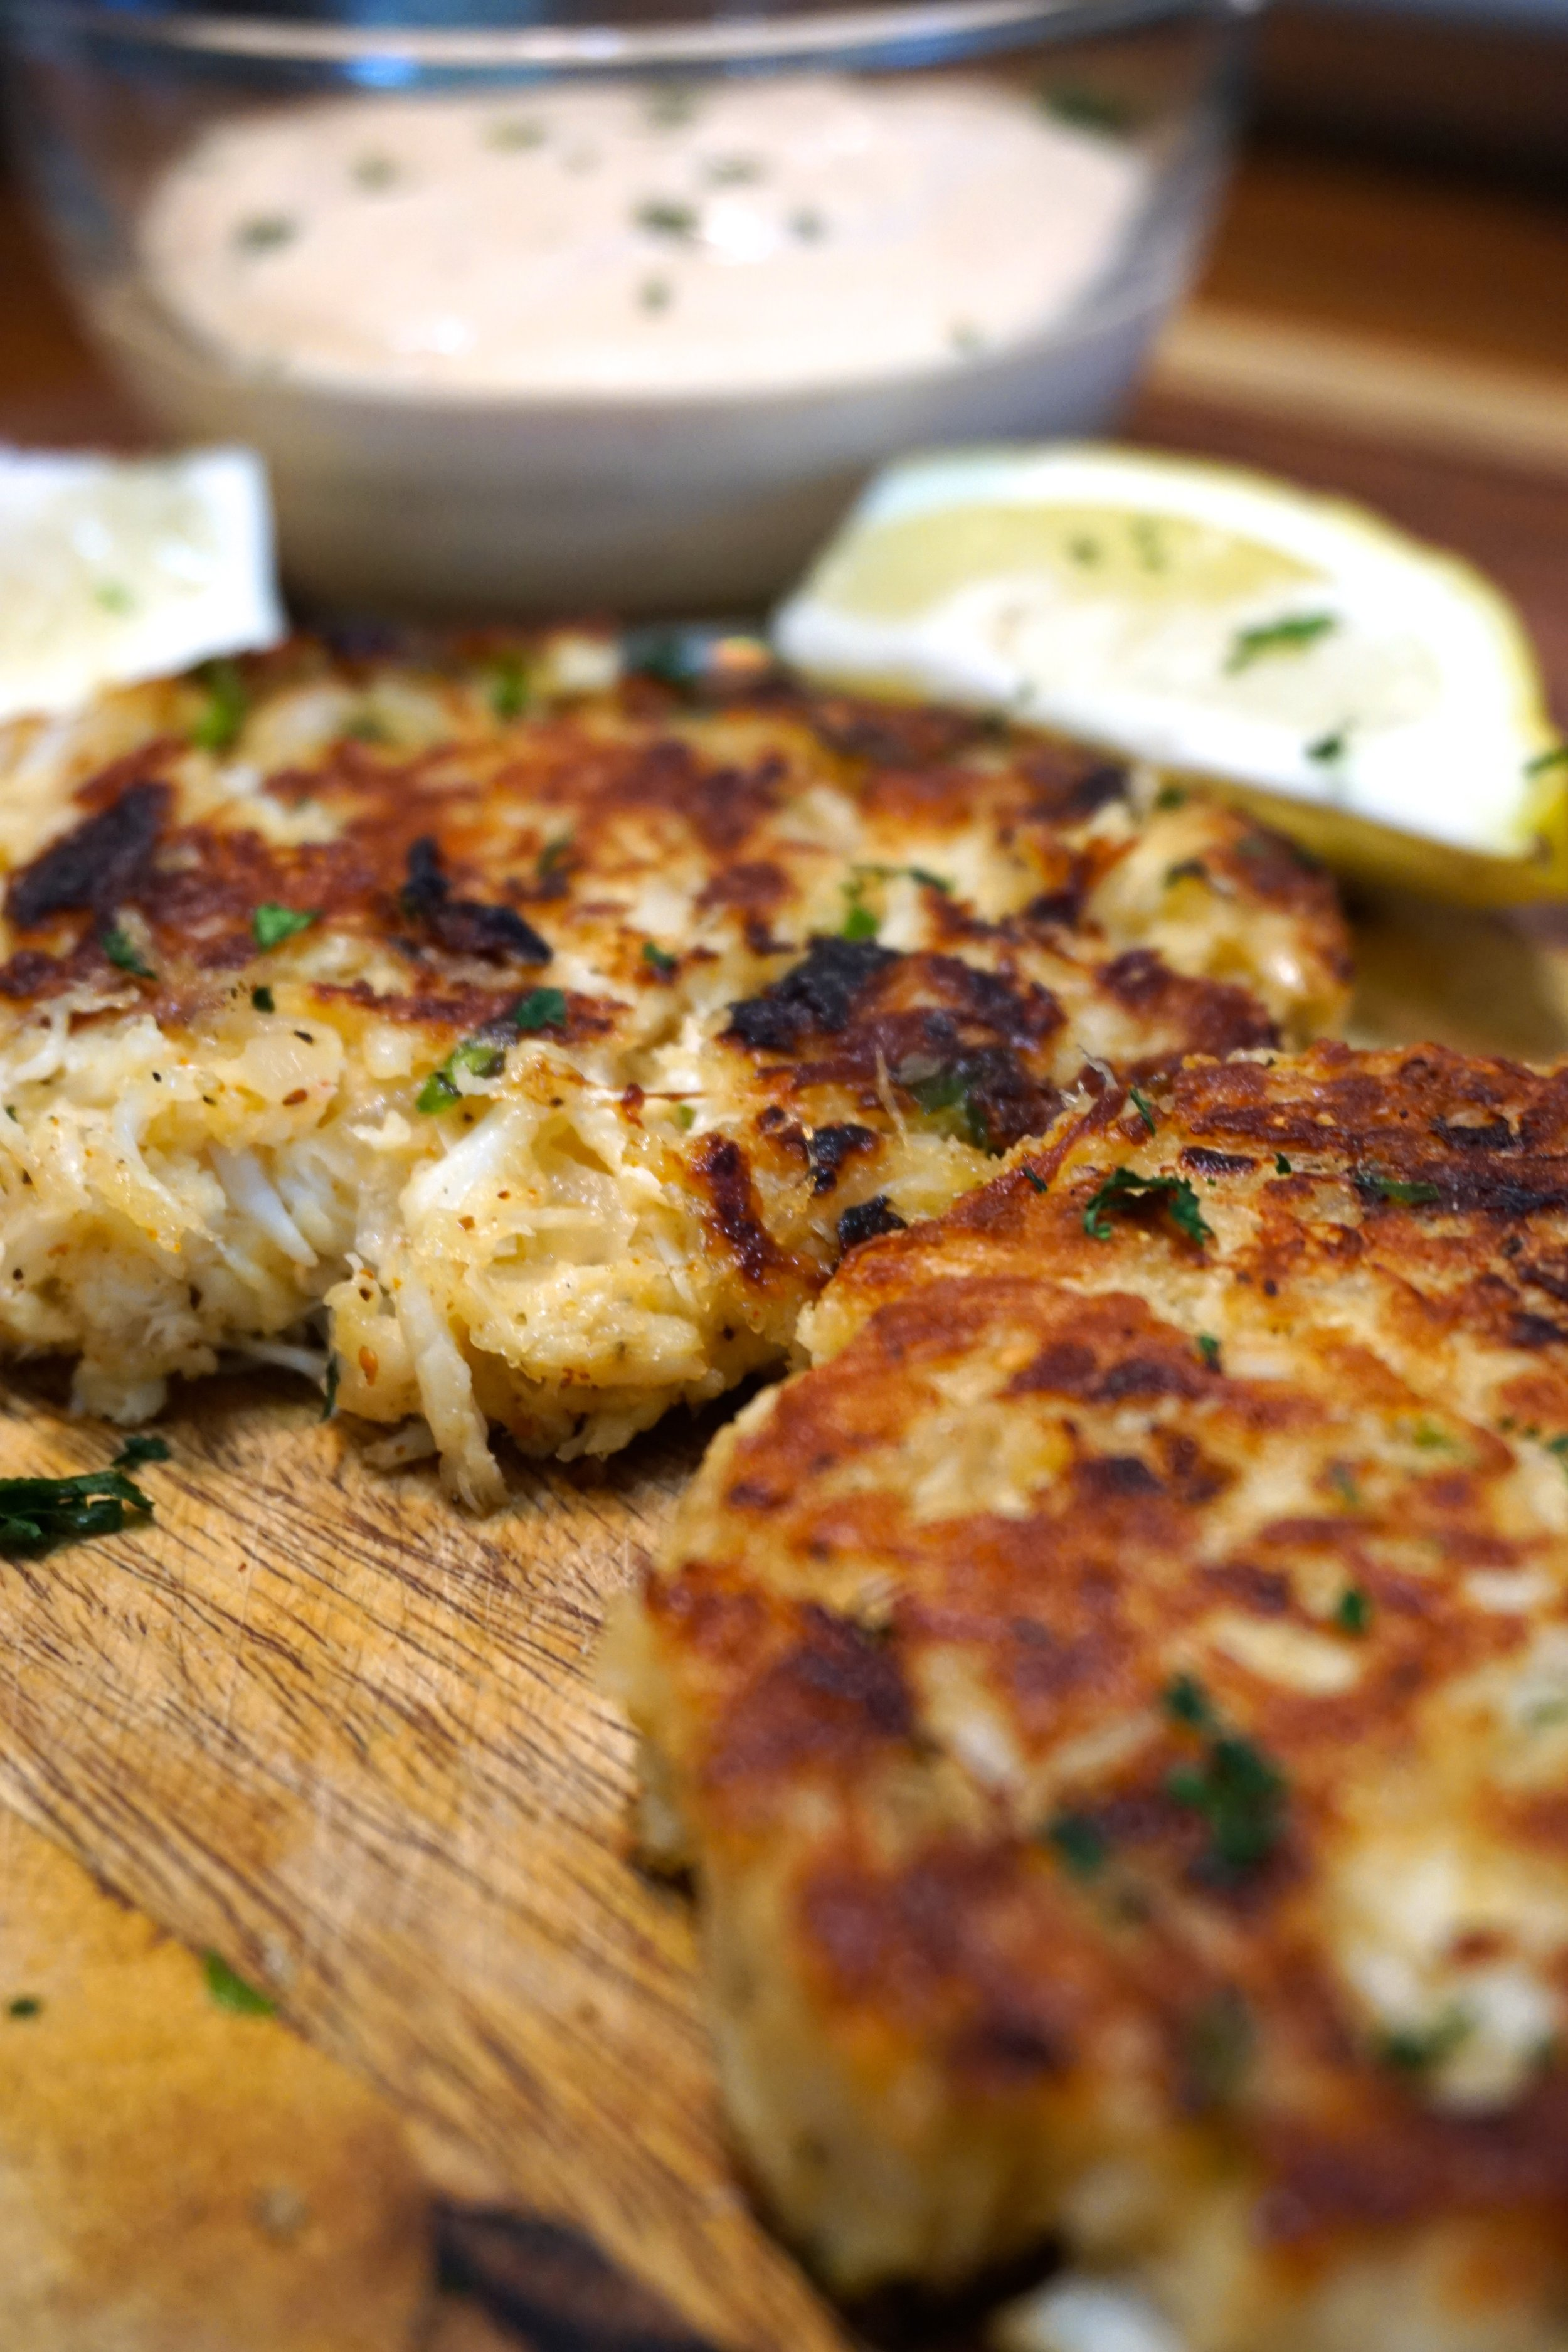 Crab Cakes - The perfect appetizer or main course for a